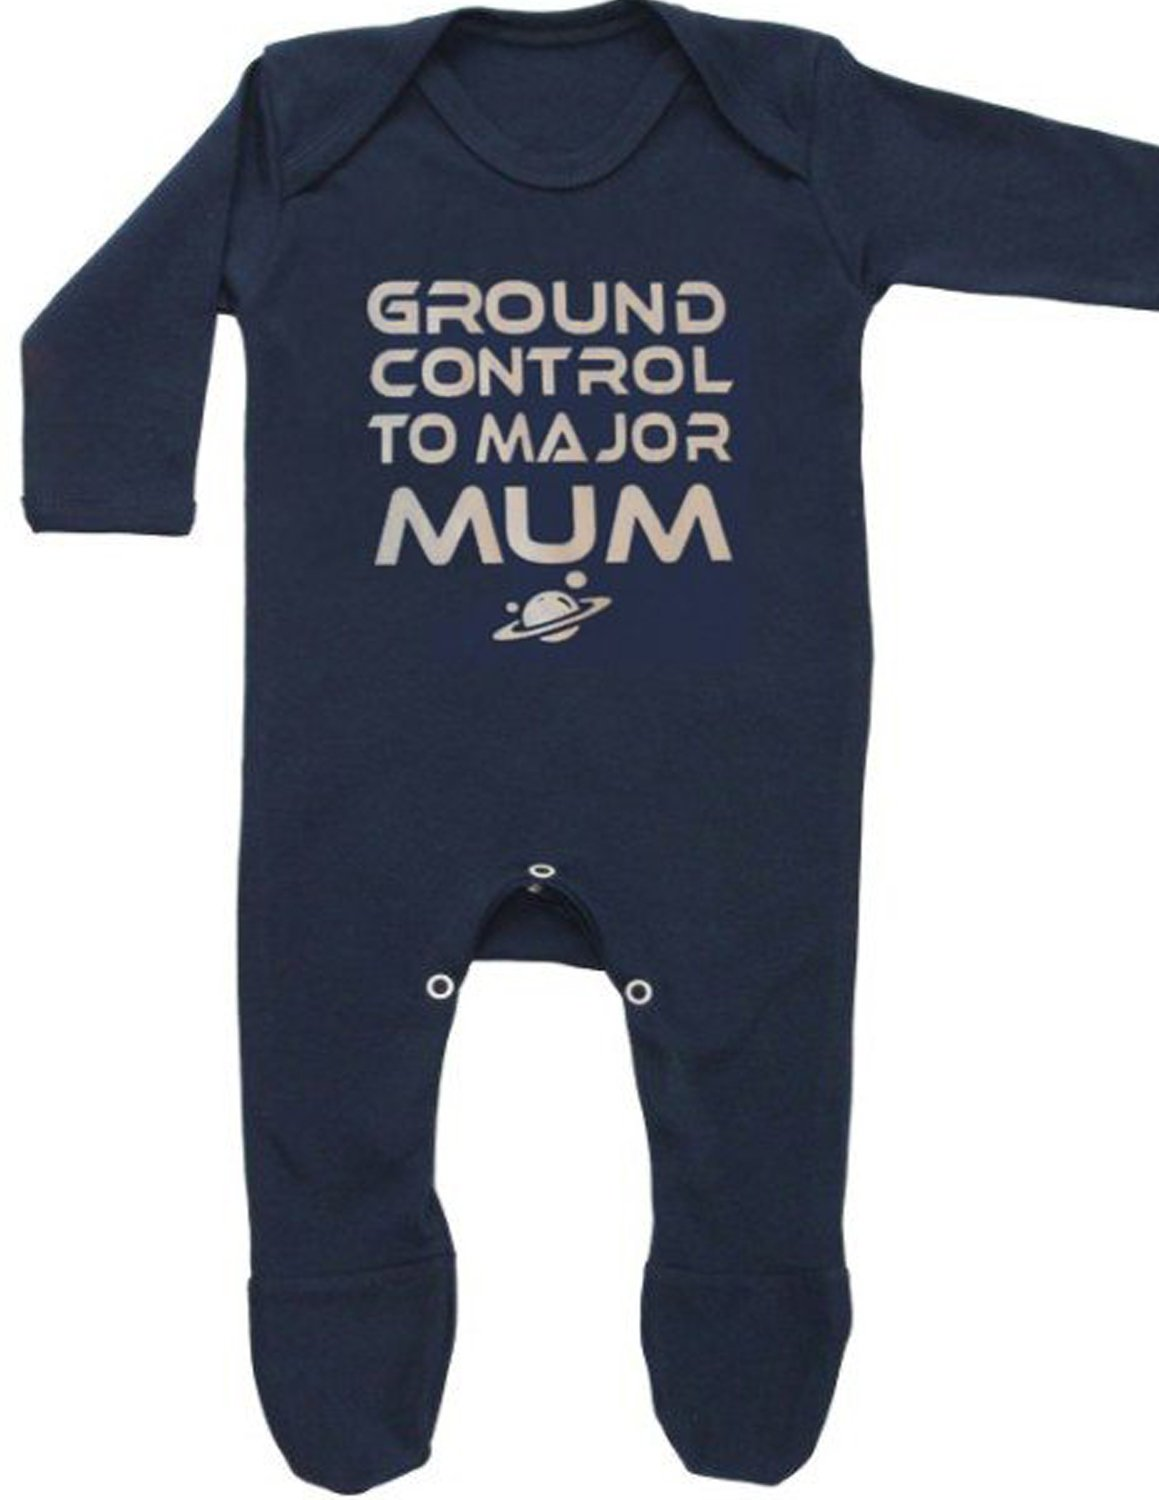 Bowie Inspired Baby Sleepsuit for Boys or Girls | GROUND CONTROL TO MAJOR MUM David Bowie / Ziggy Stardust Romper Outfit - Baby Shower, Newborn Clothes, New Baby Gift | BABY MOO'S UK (0-3 months) New Baby Gift | BABY MOO' S UK (0-3 months) BabyMoos.com